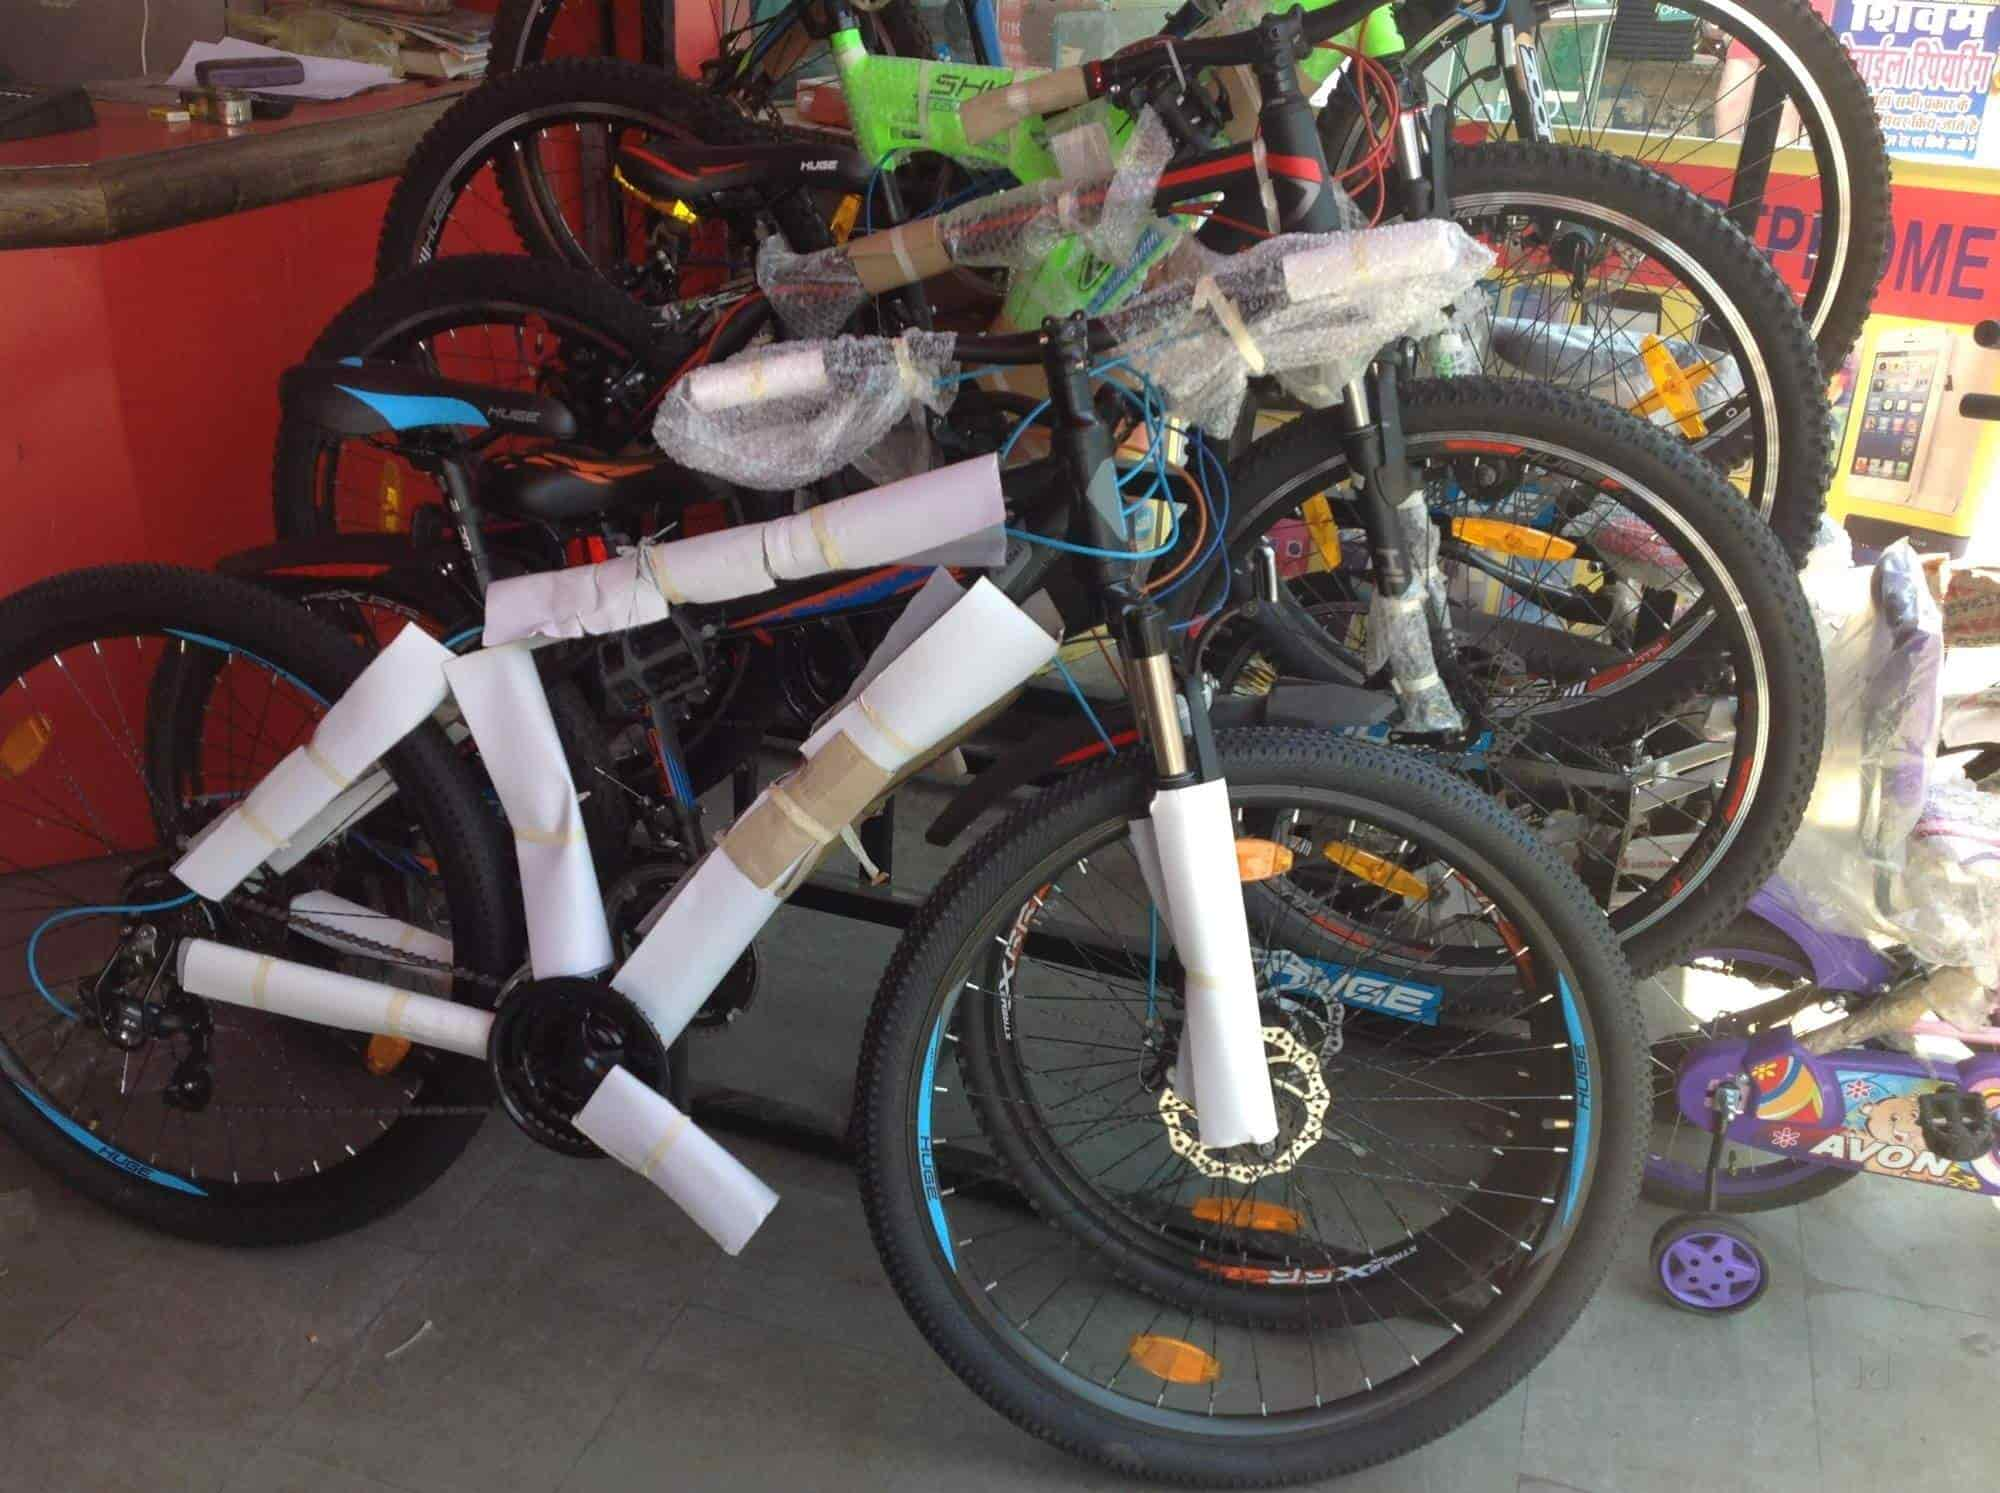 4eee14c3e58 Punjab Cycle Store, Hamidia Road - Bicycle Dealers in Bhopal - Justdial